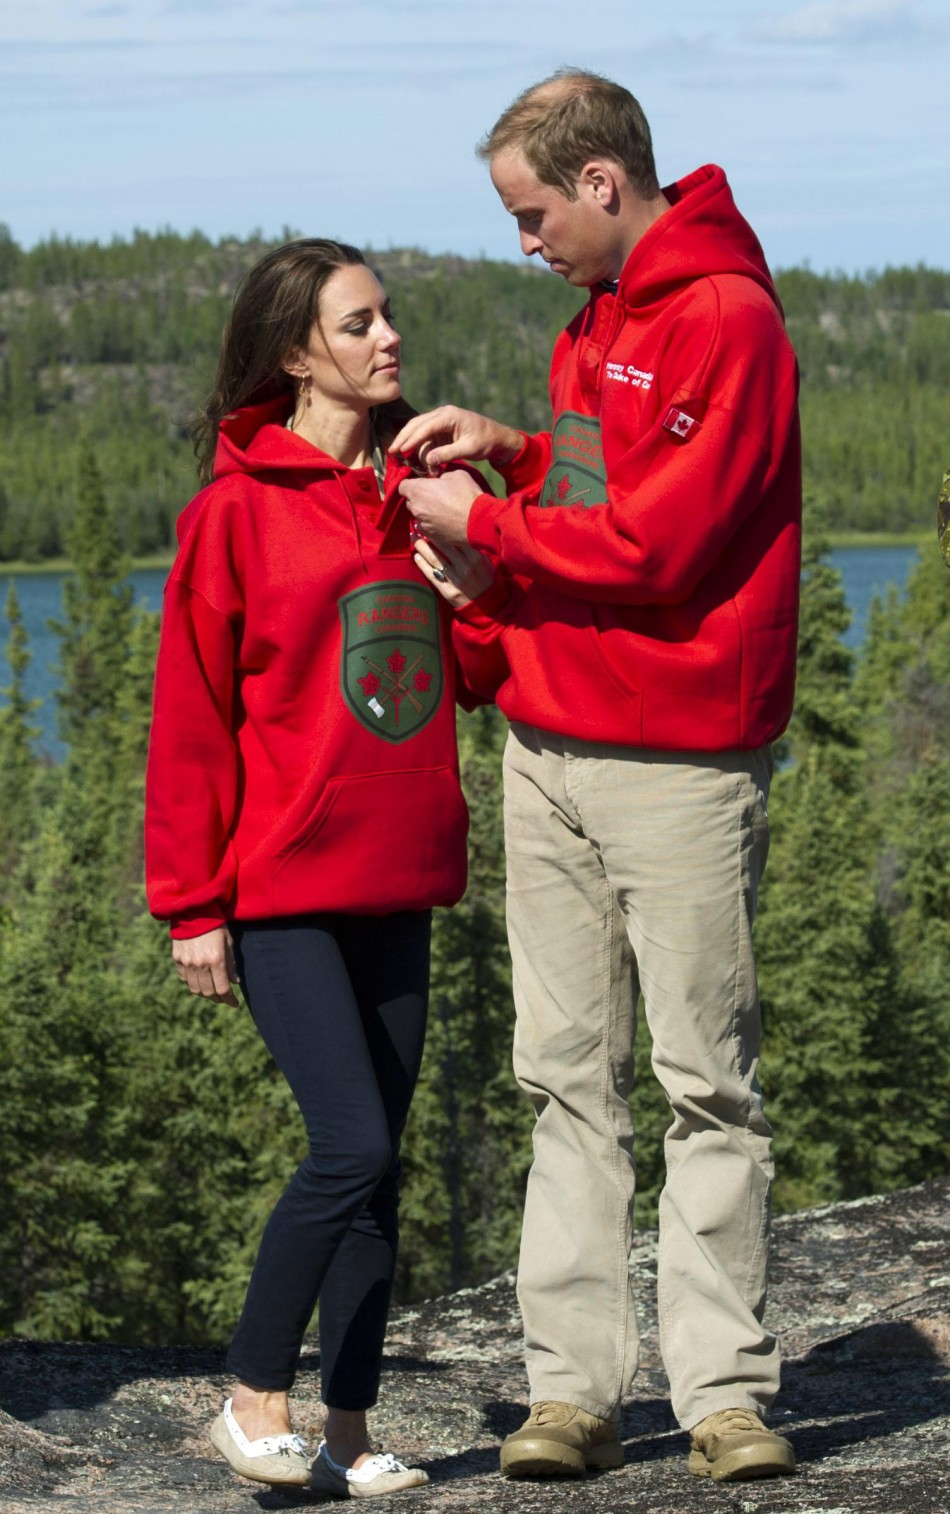 Britain's Prince William and his wife Catherine, Duchess of Cambridge, wear sweaters of the Canadian Rangers during a visit to Blatchford Lake, Northwest Territories